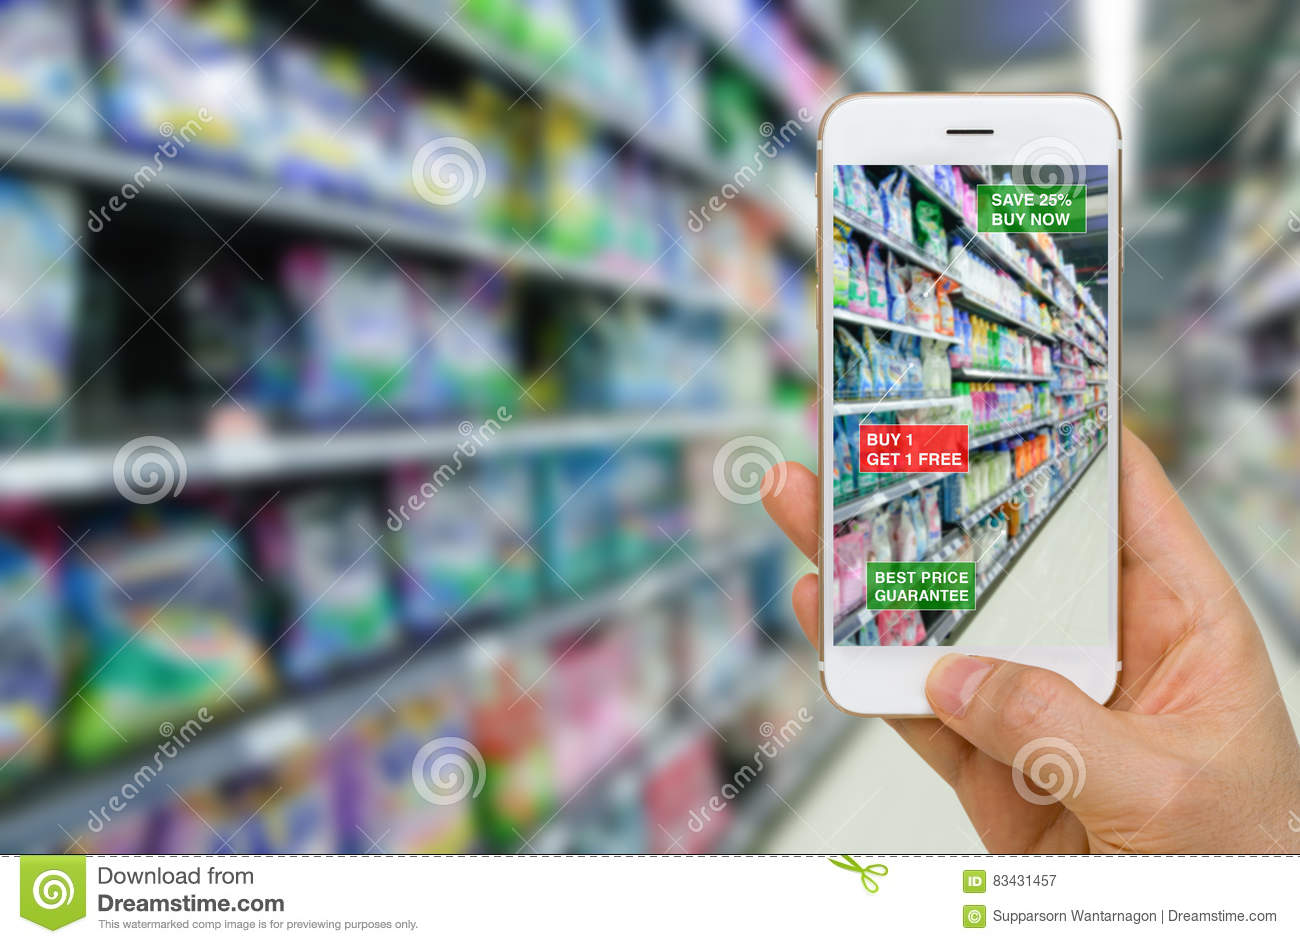 Deployment of Augmented Reality in Retail Business Concept in Supermarket for Discounted or on Sale Products.